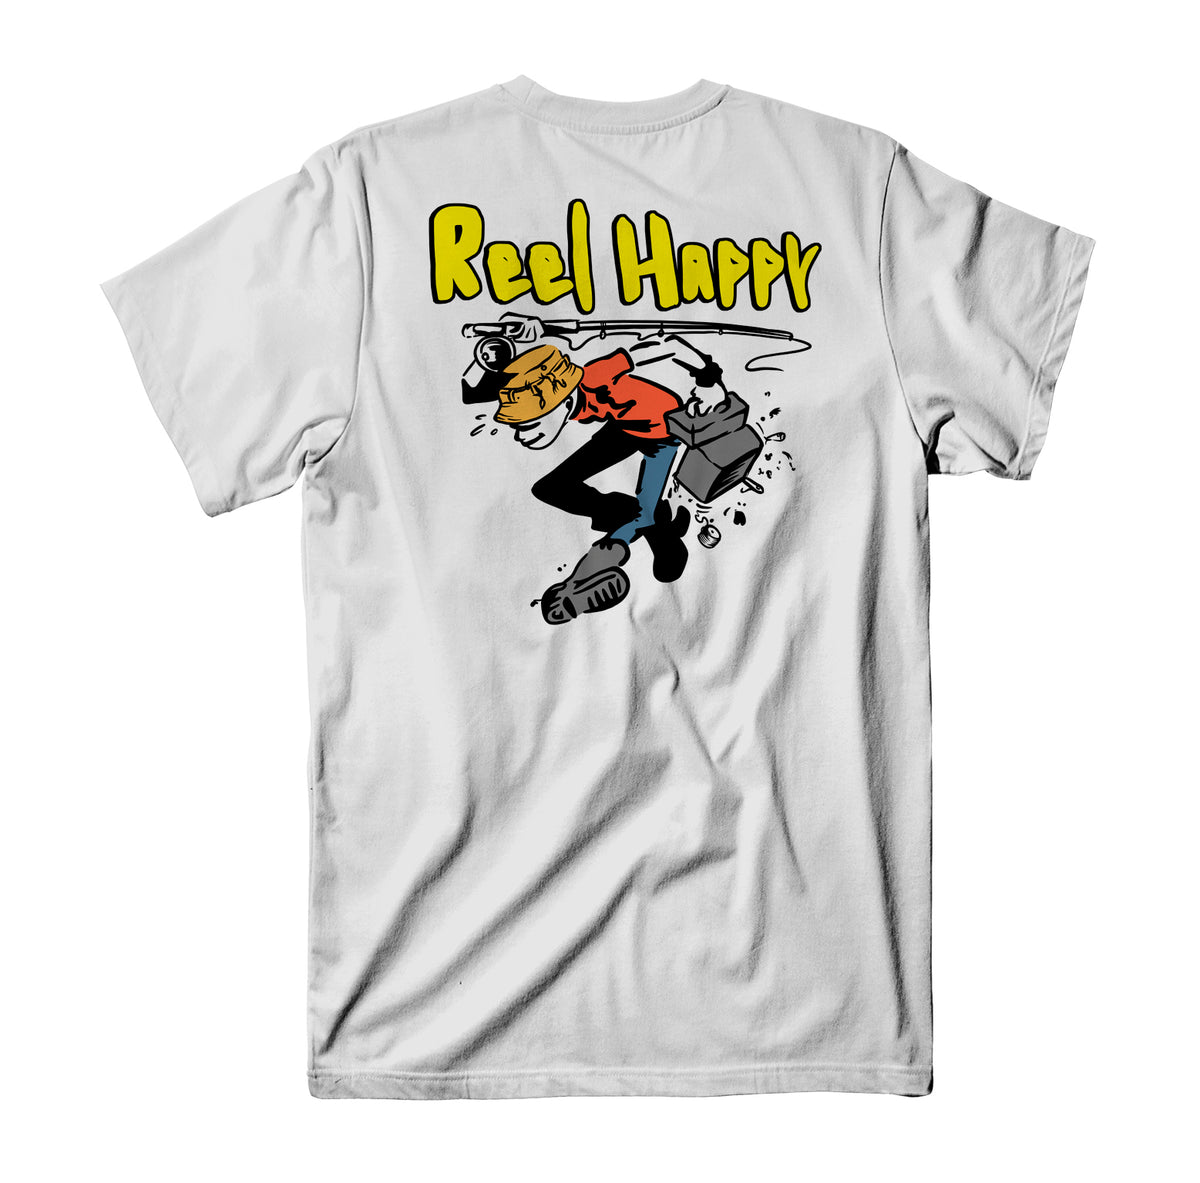 Jerk Bait Tee - White - Reel Happy Co